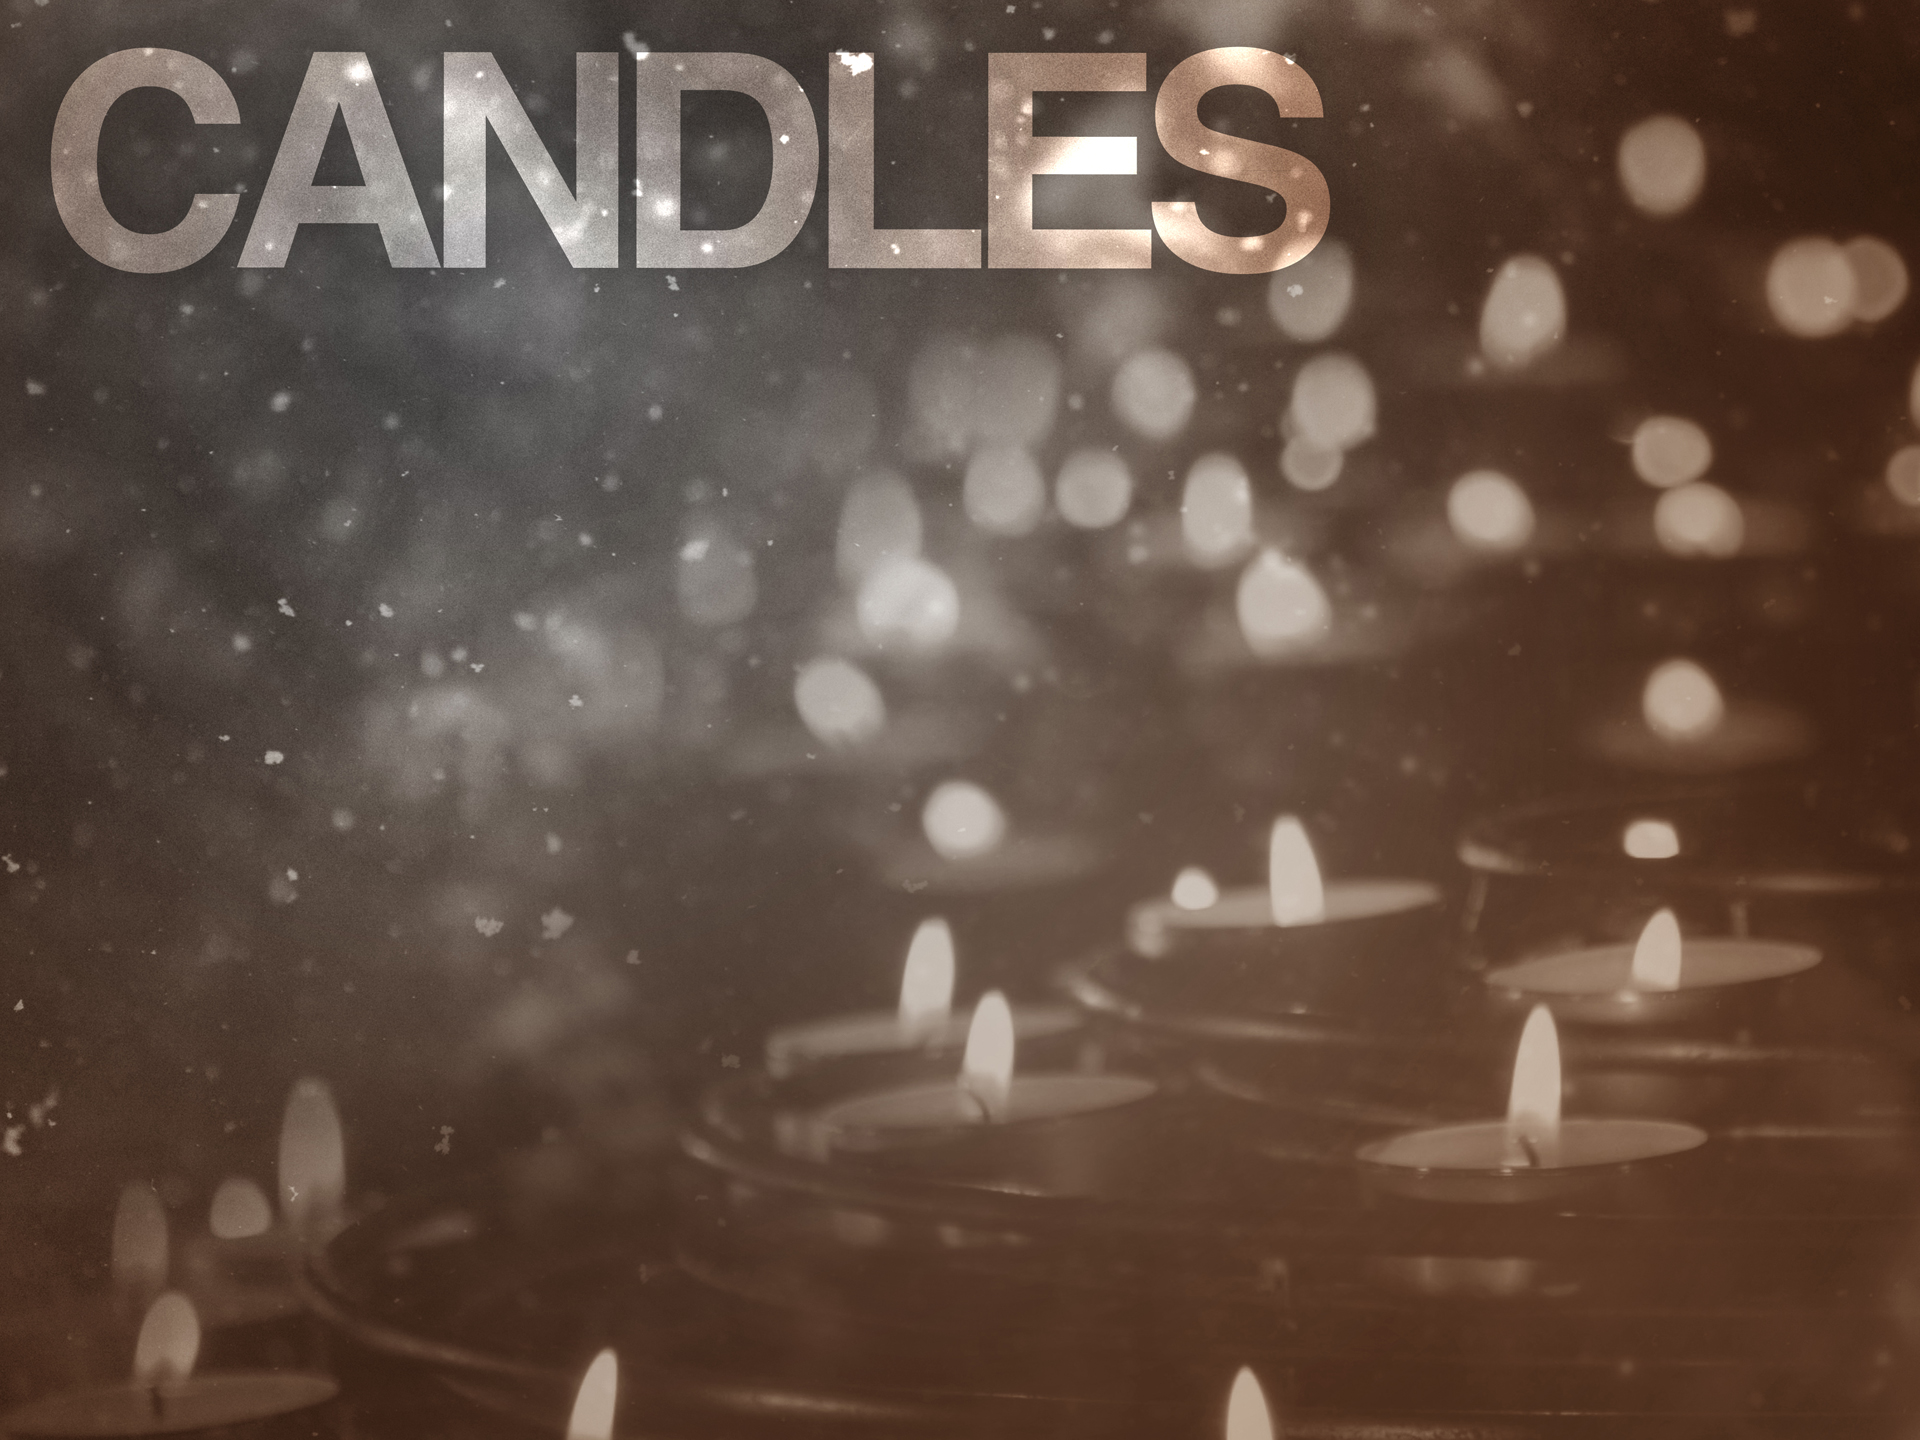 Candles | TripleWide Media